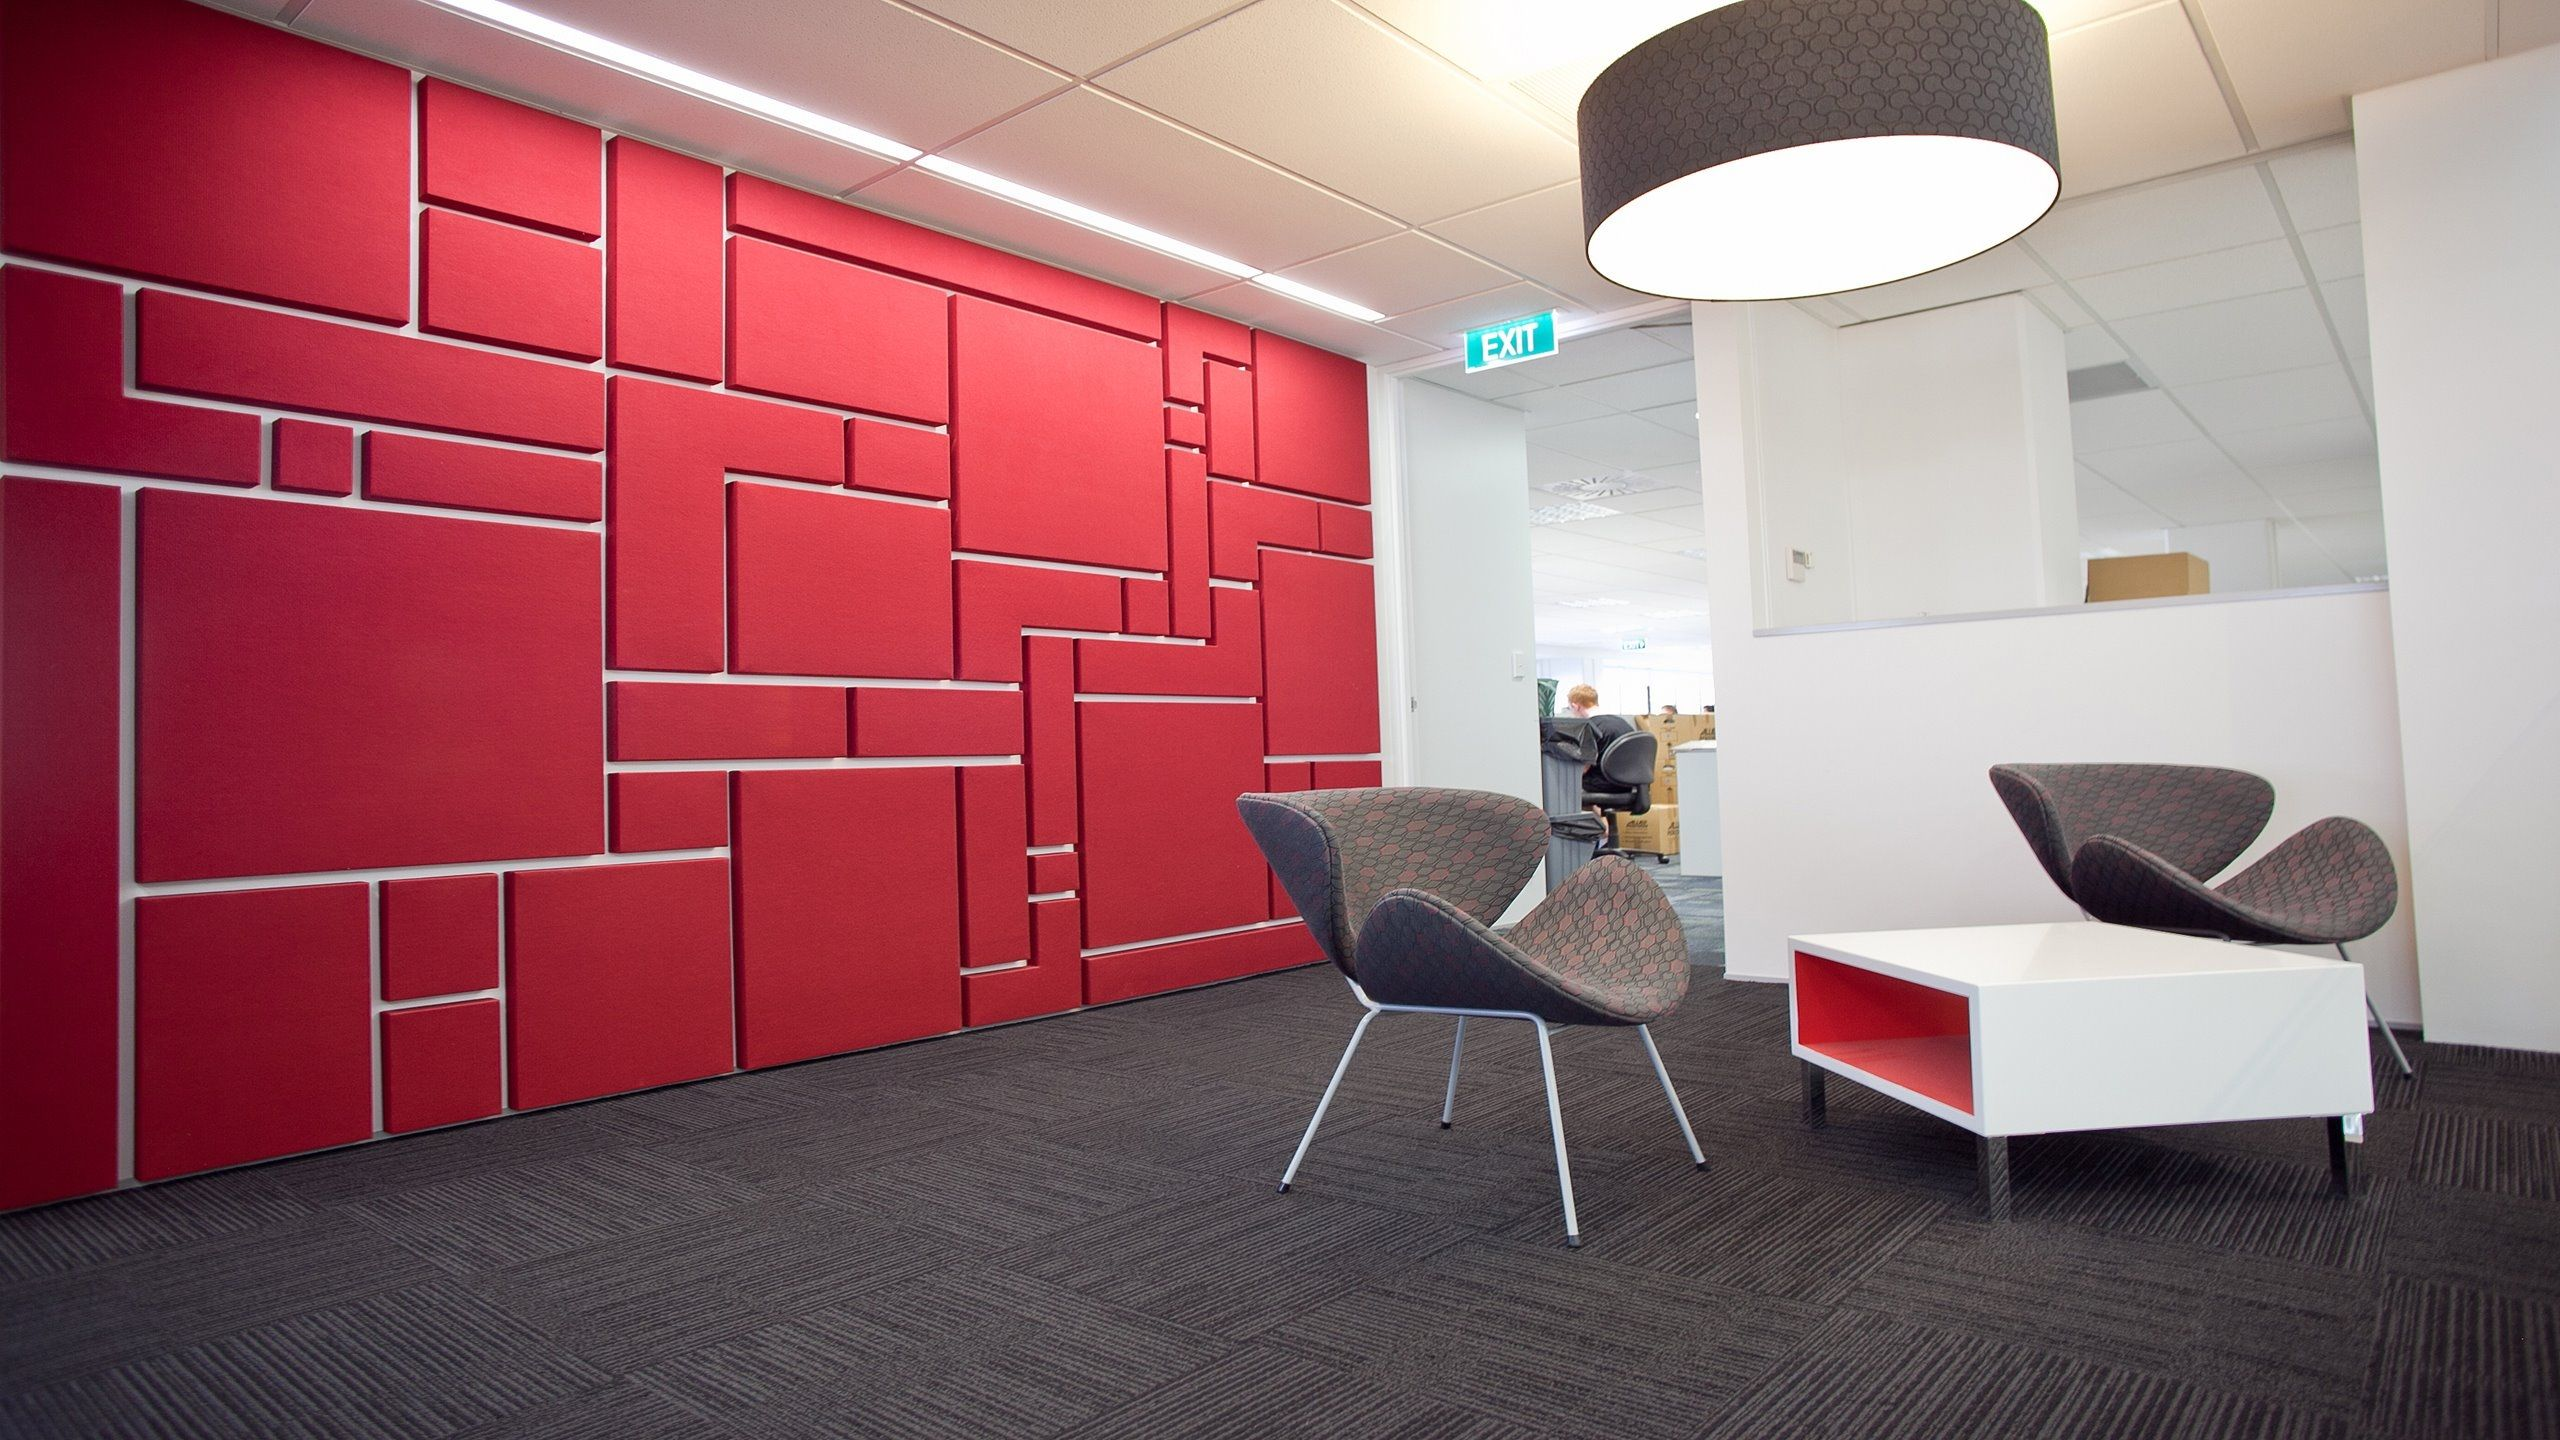 fabric wall designs. Wall Paneling Designs For Office  http ultimaterpmod us